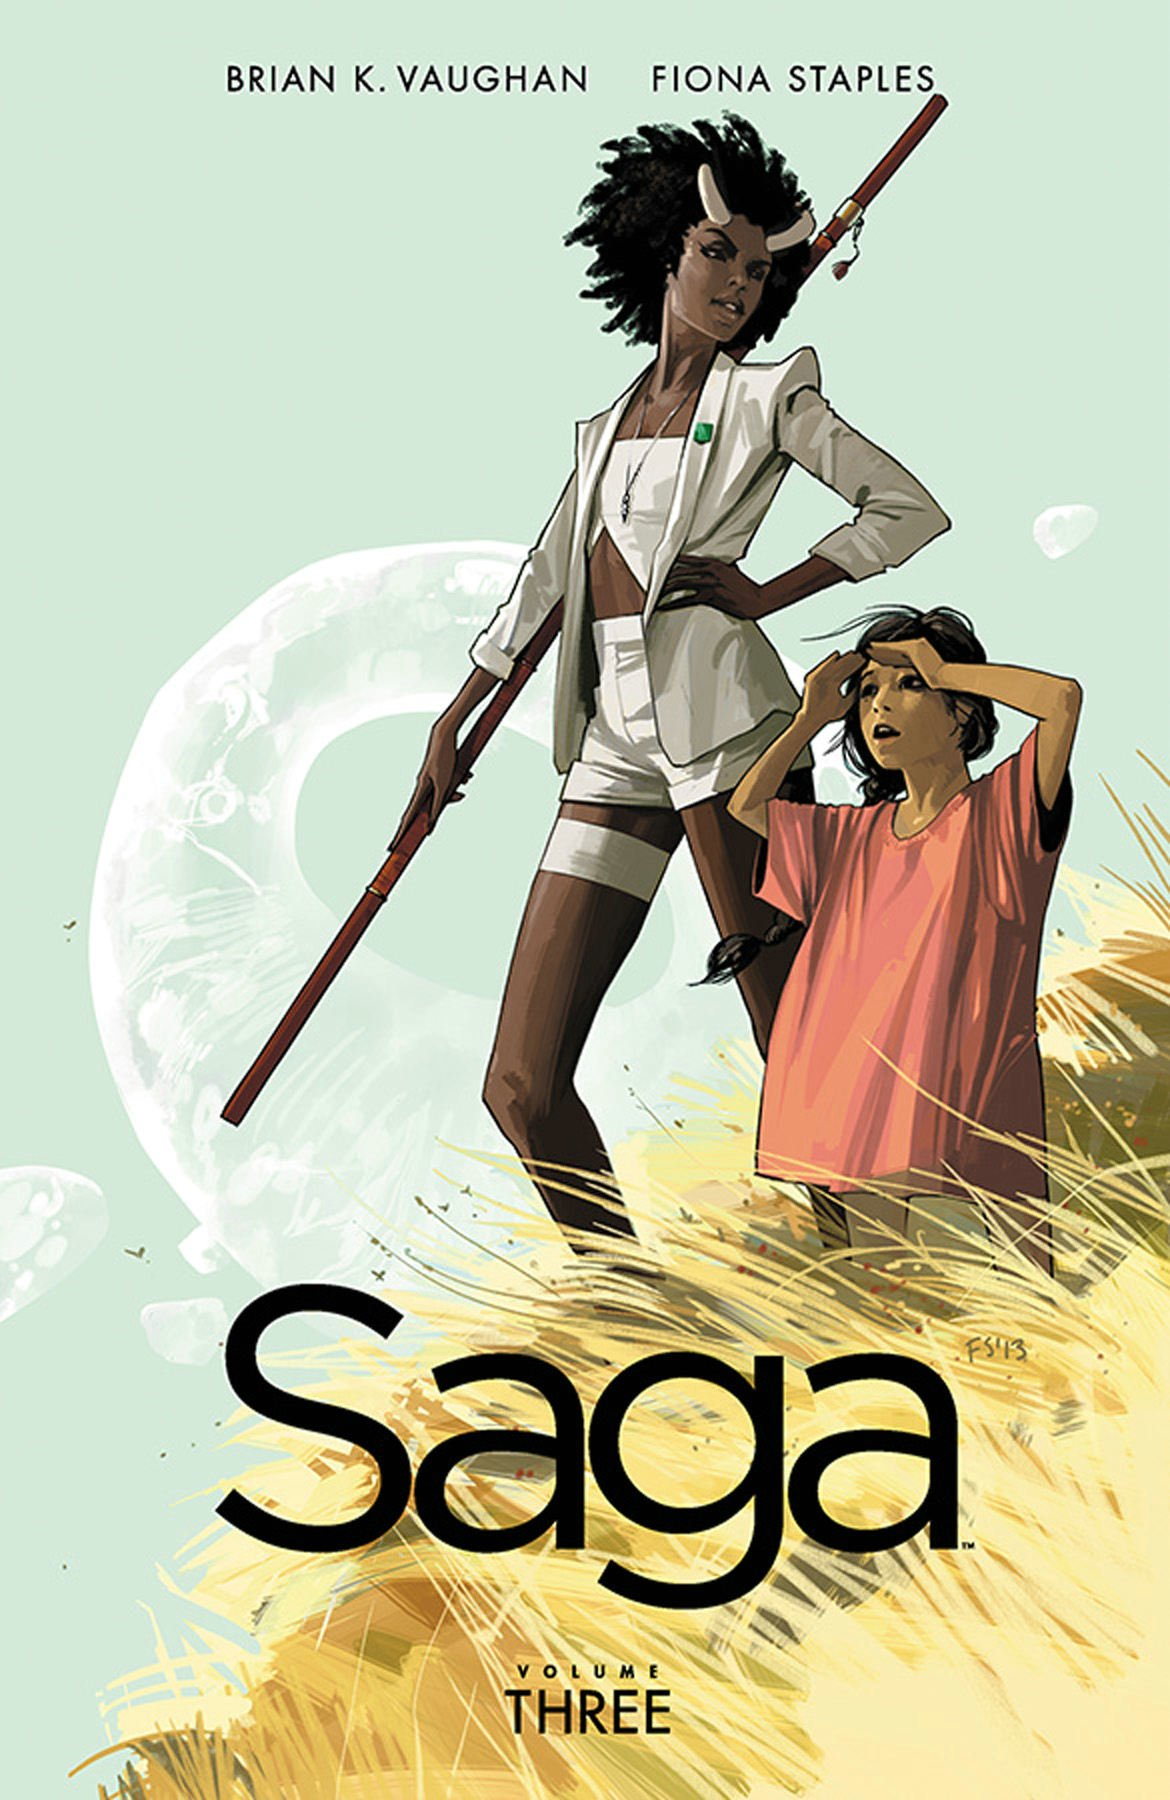 Saga, Vol. 3 by Brian K. Vaughan